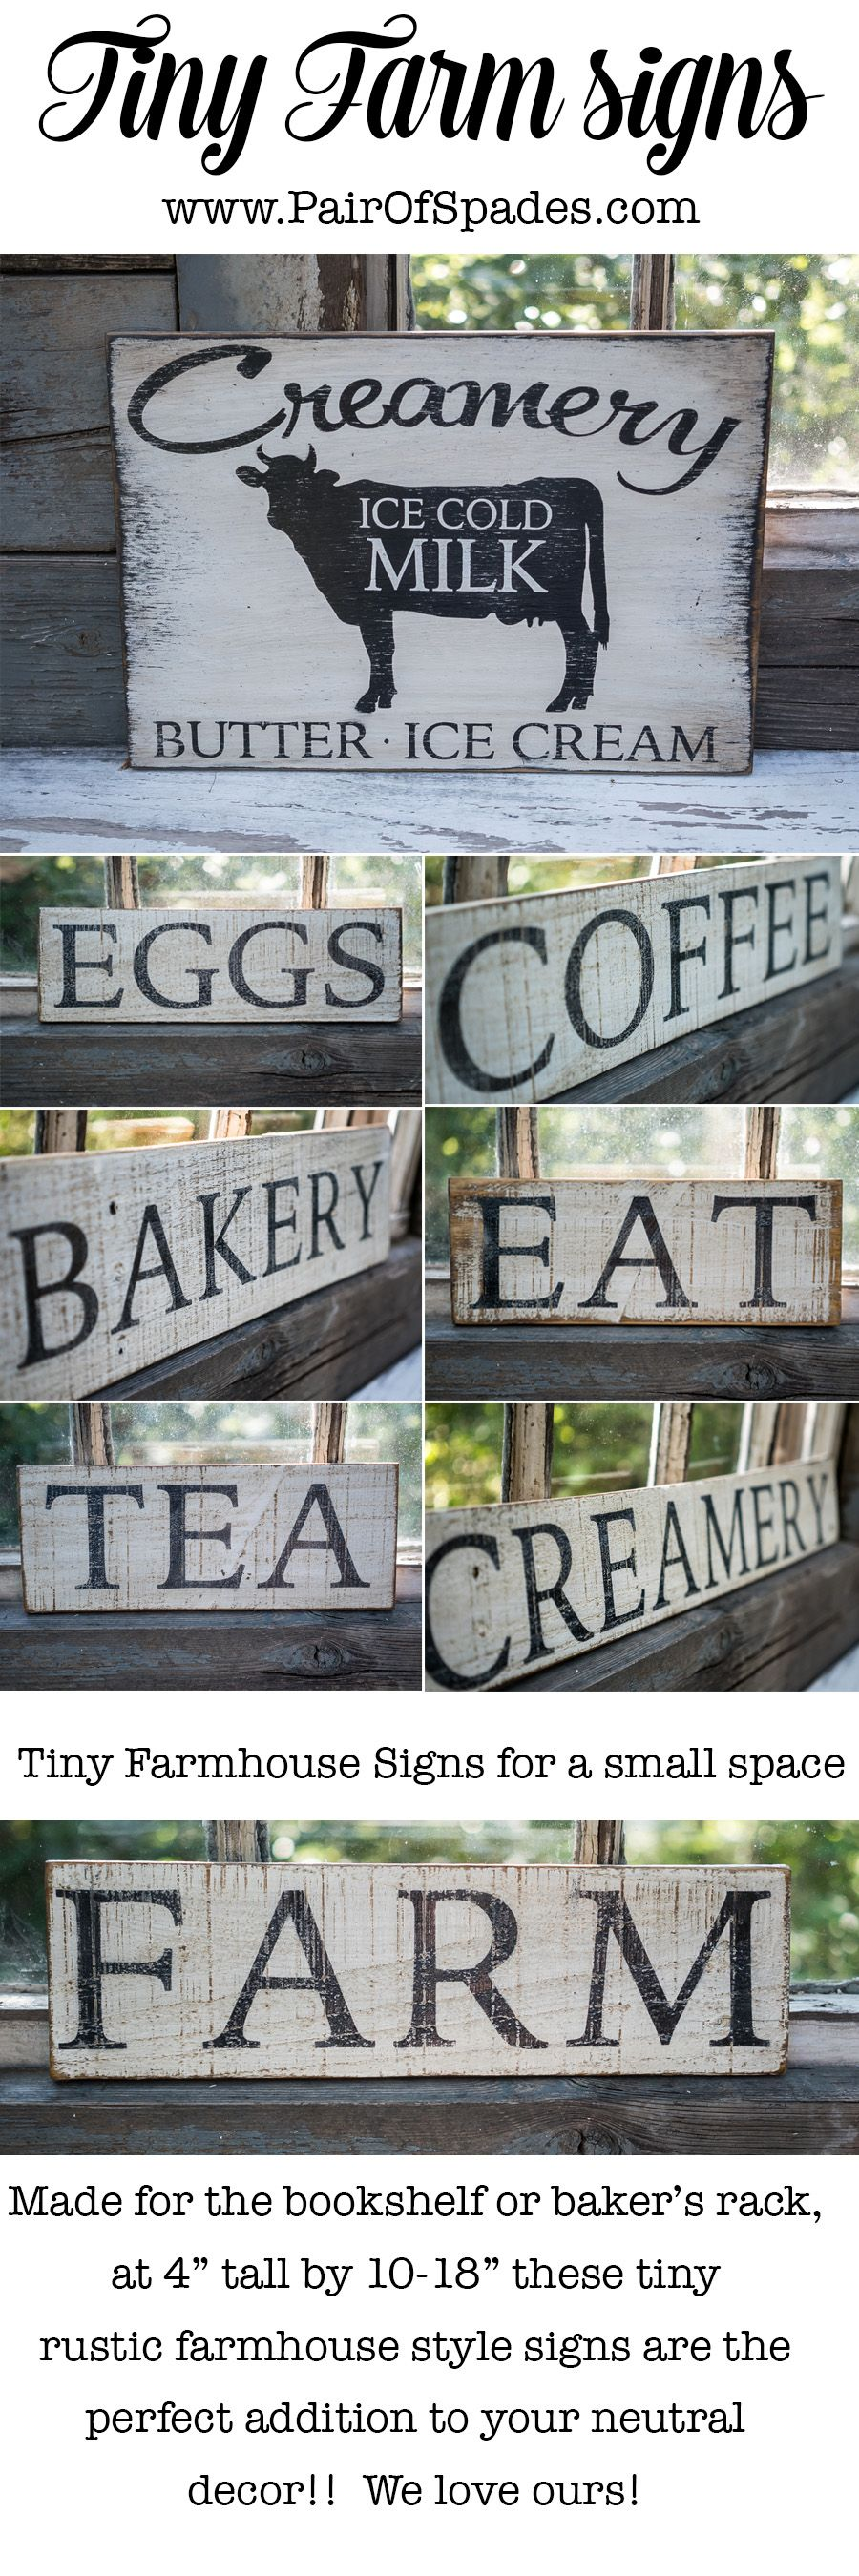 Rustic Farmhouse Signs Super Vintage Looking And Affordable Must These For My Kitchen Asap